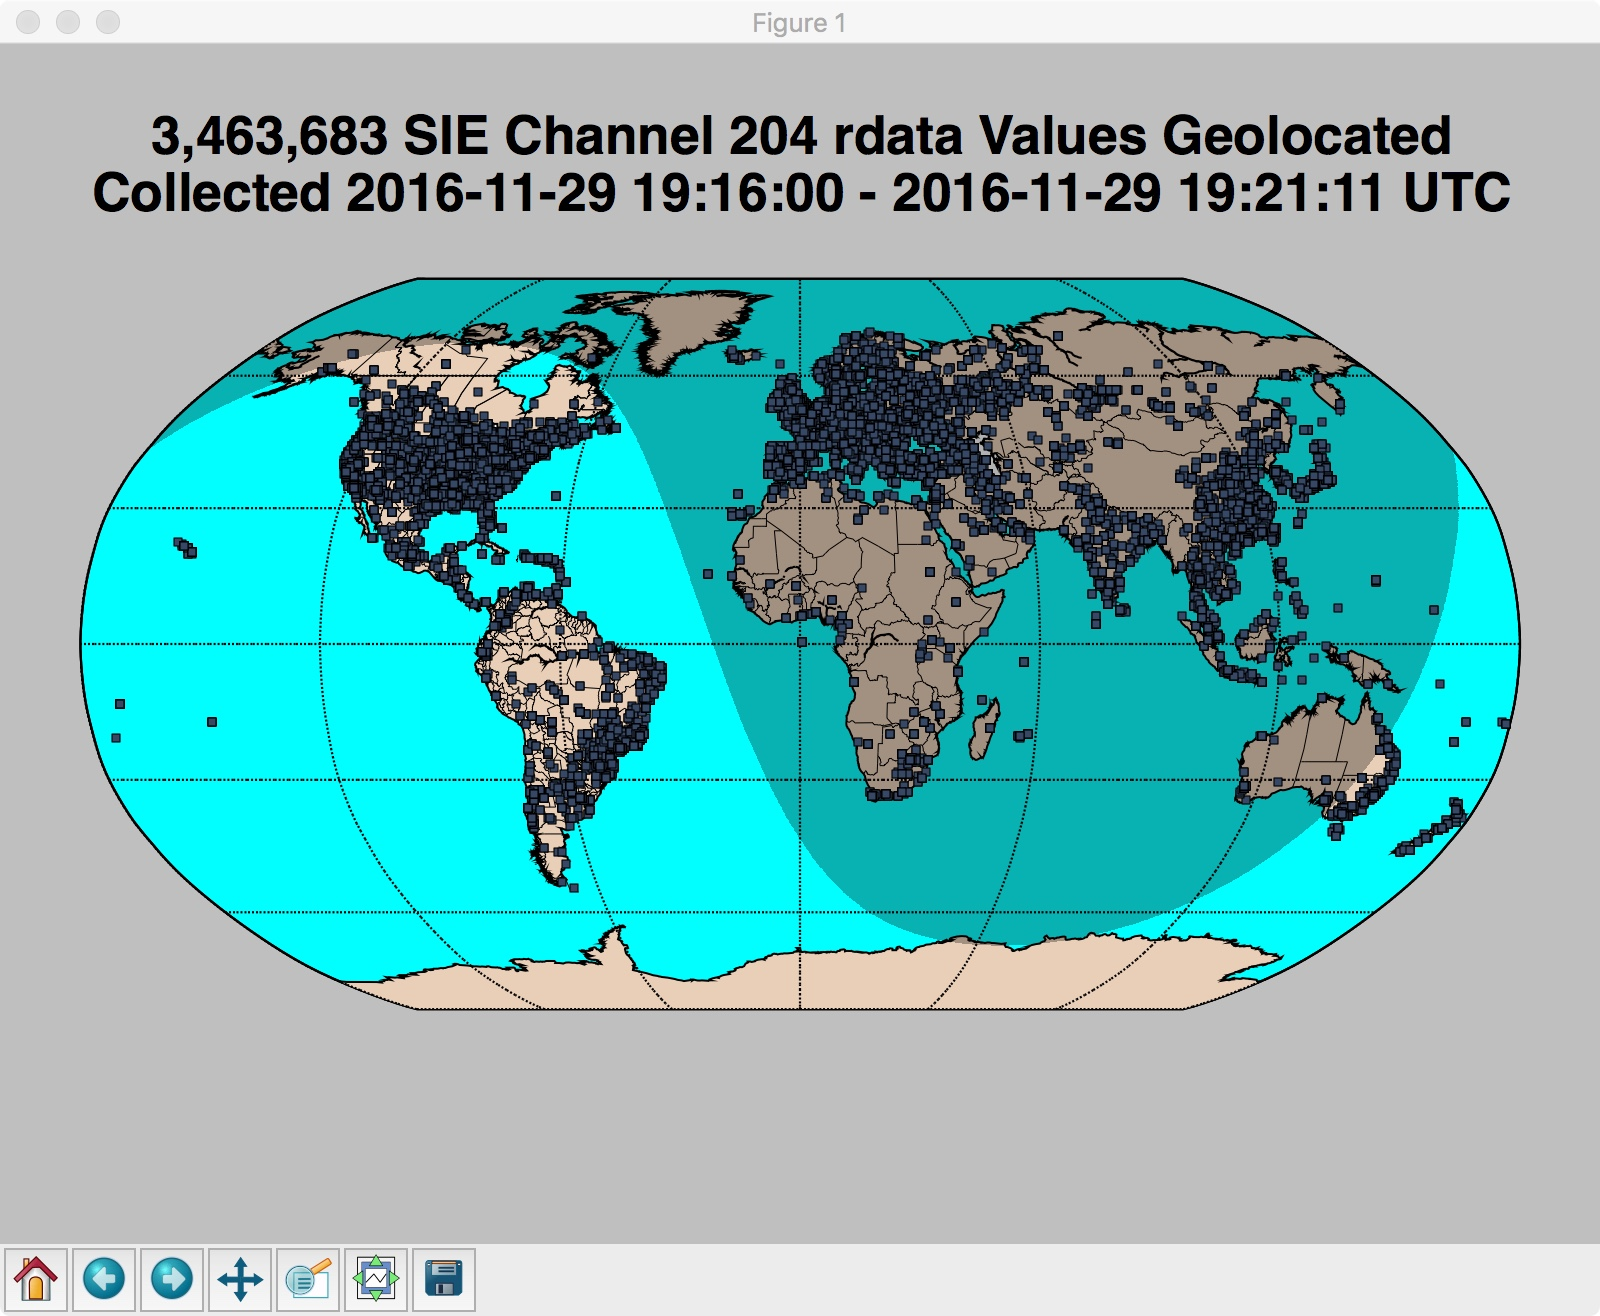 3,463,683 SIE Channel 204 rdata Values Geolocated